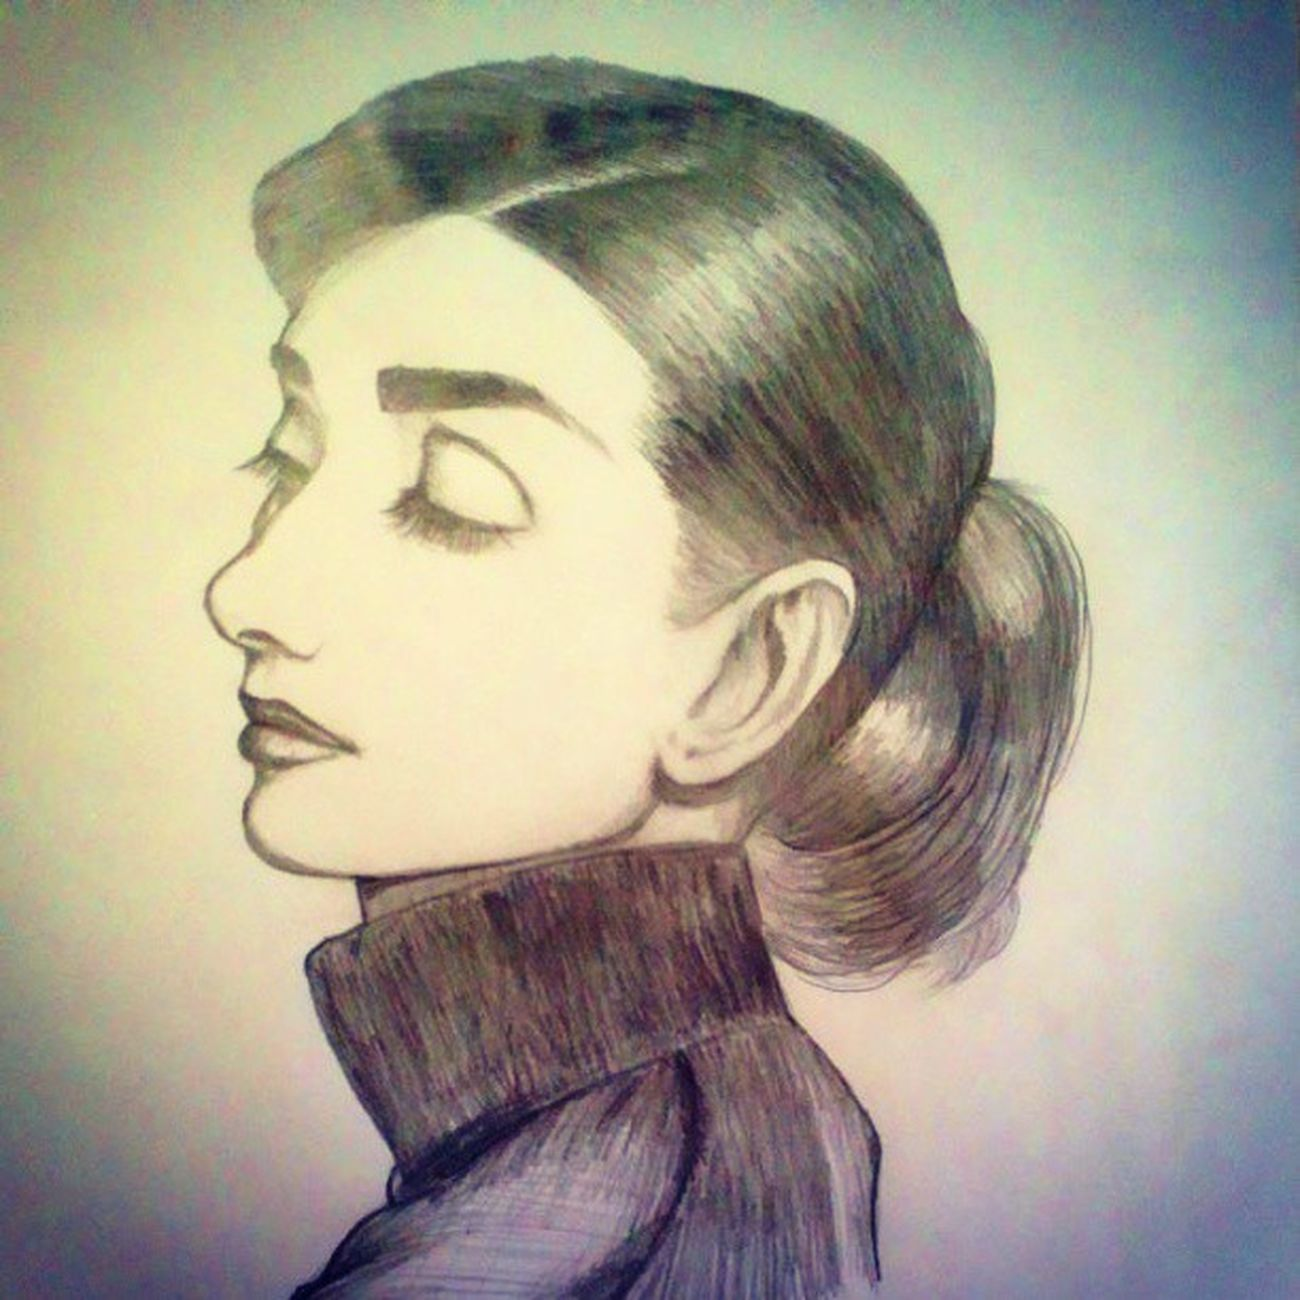 Audrey Hepburn by Sharp Pencil HB 0.5mm. Art MOVIE Cinema Illustration Actress Audreyhepburn Pencilillustration